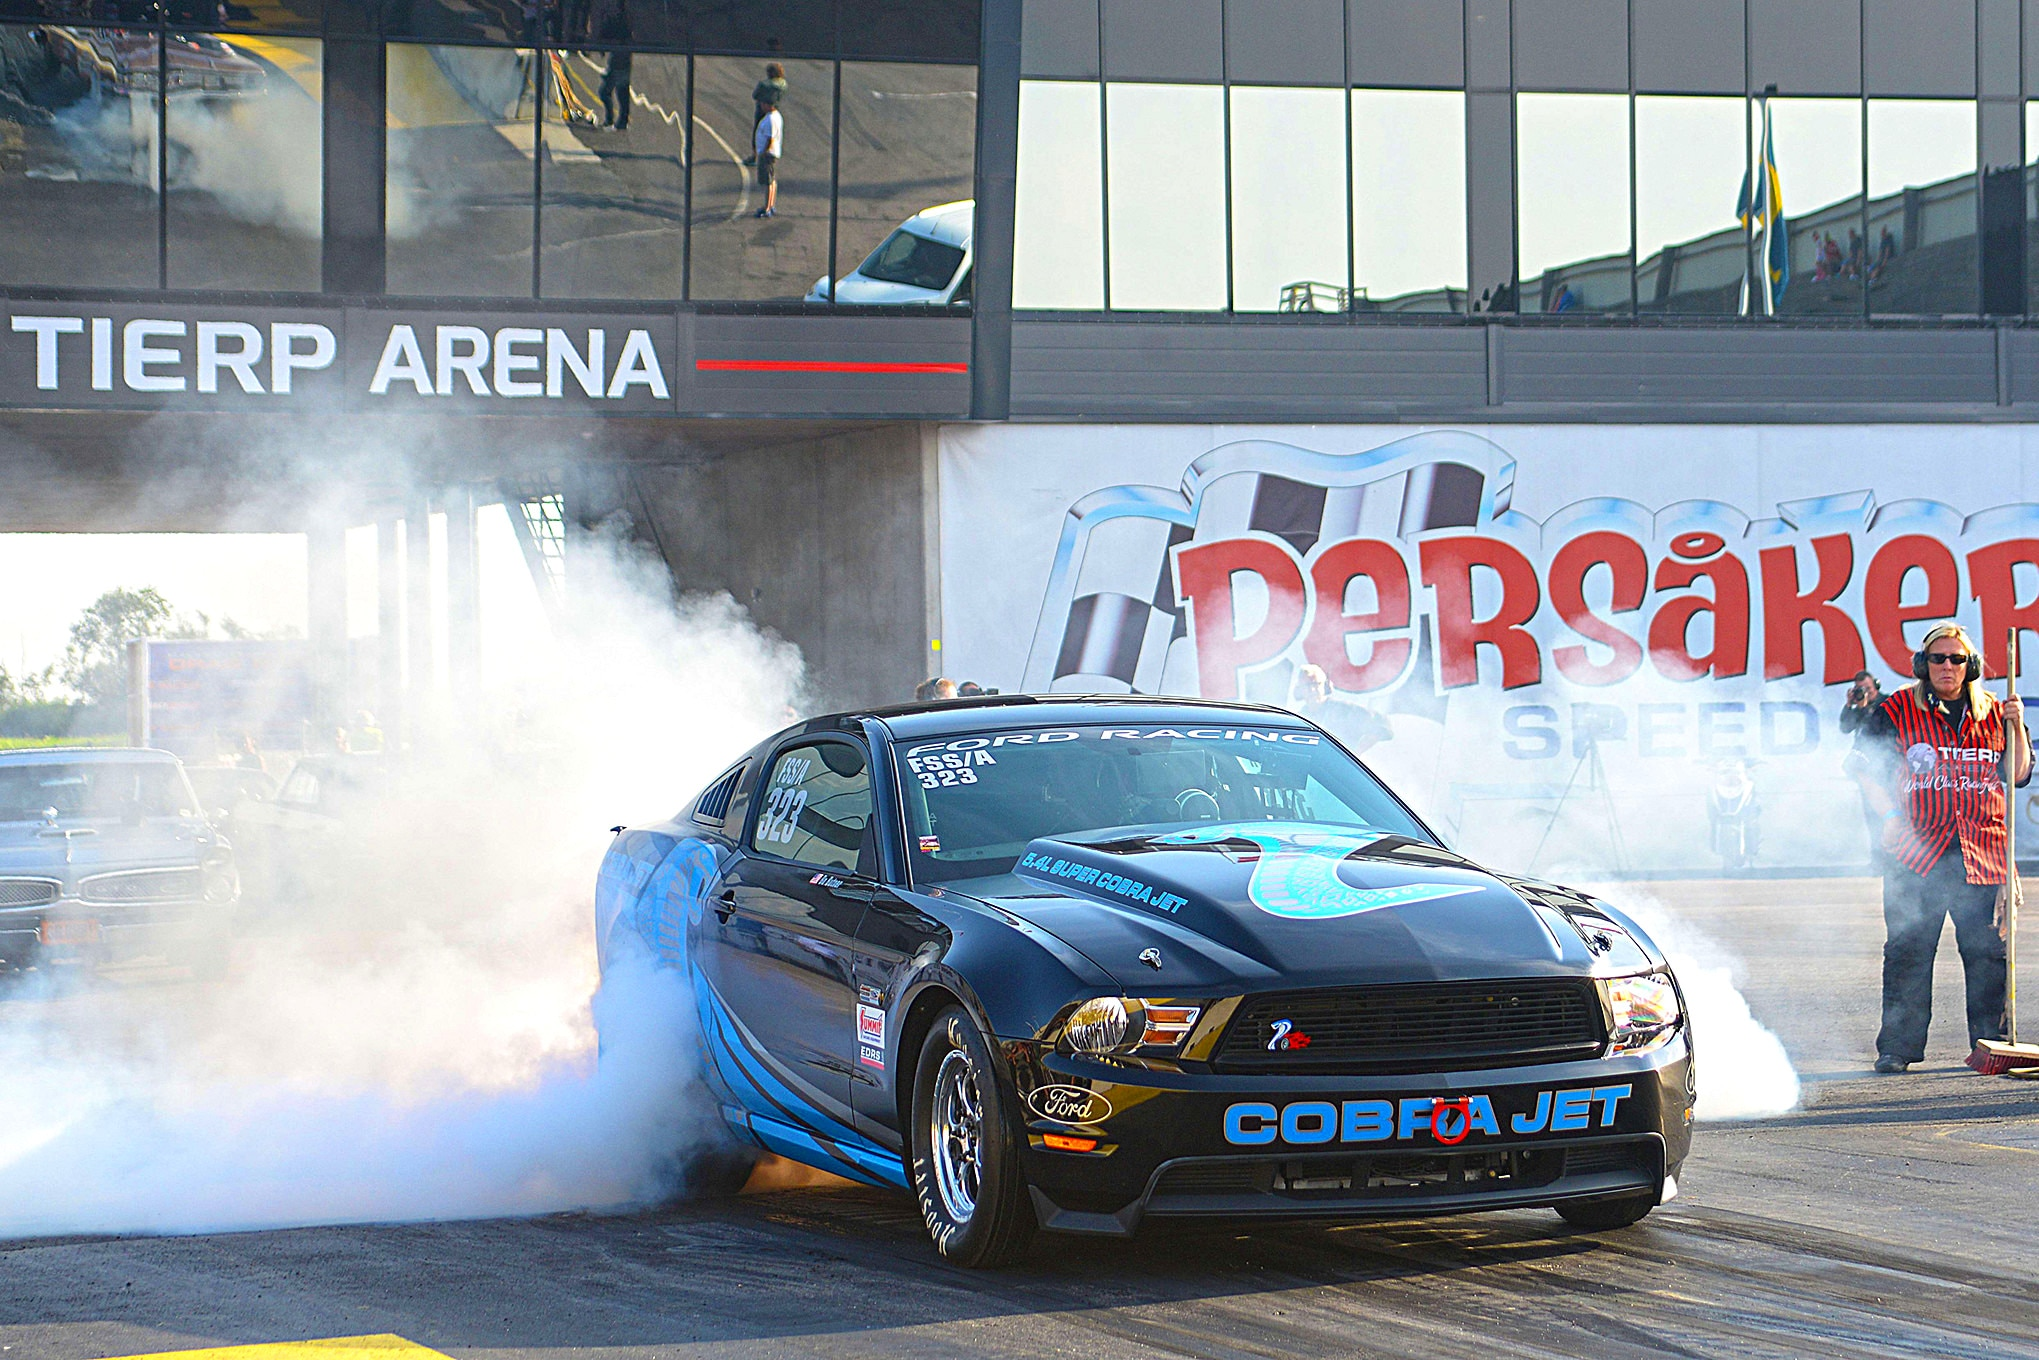 2012 Cobra Jet Ford Racing At Tierp In Sweden 01